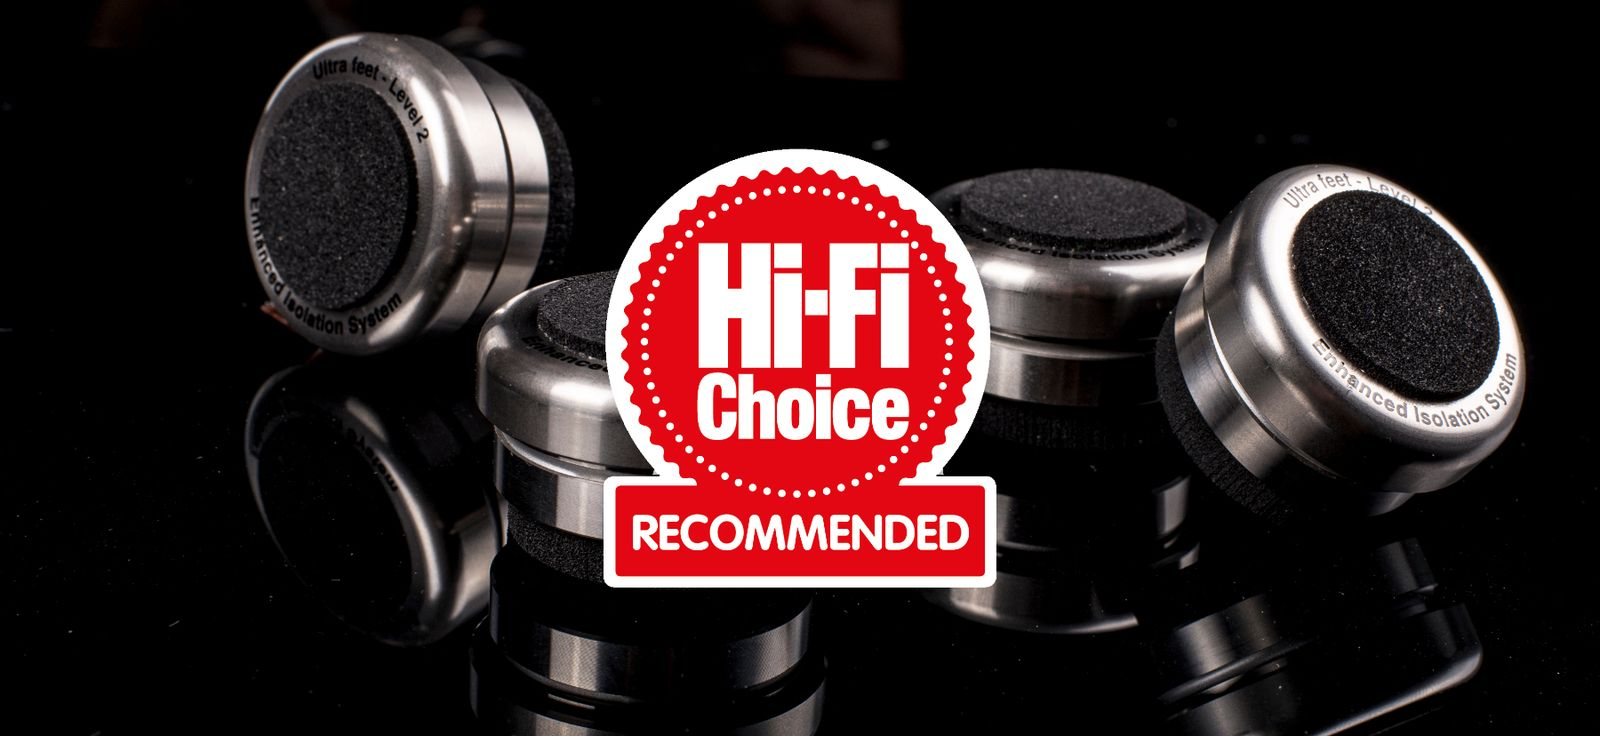 Bassocontinuo Ultra Feet (Level 2) awarded a 'Recommended' badge from Hi-Fi Choice